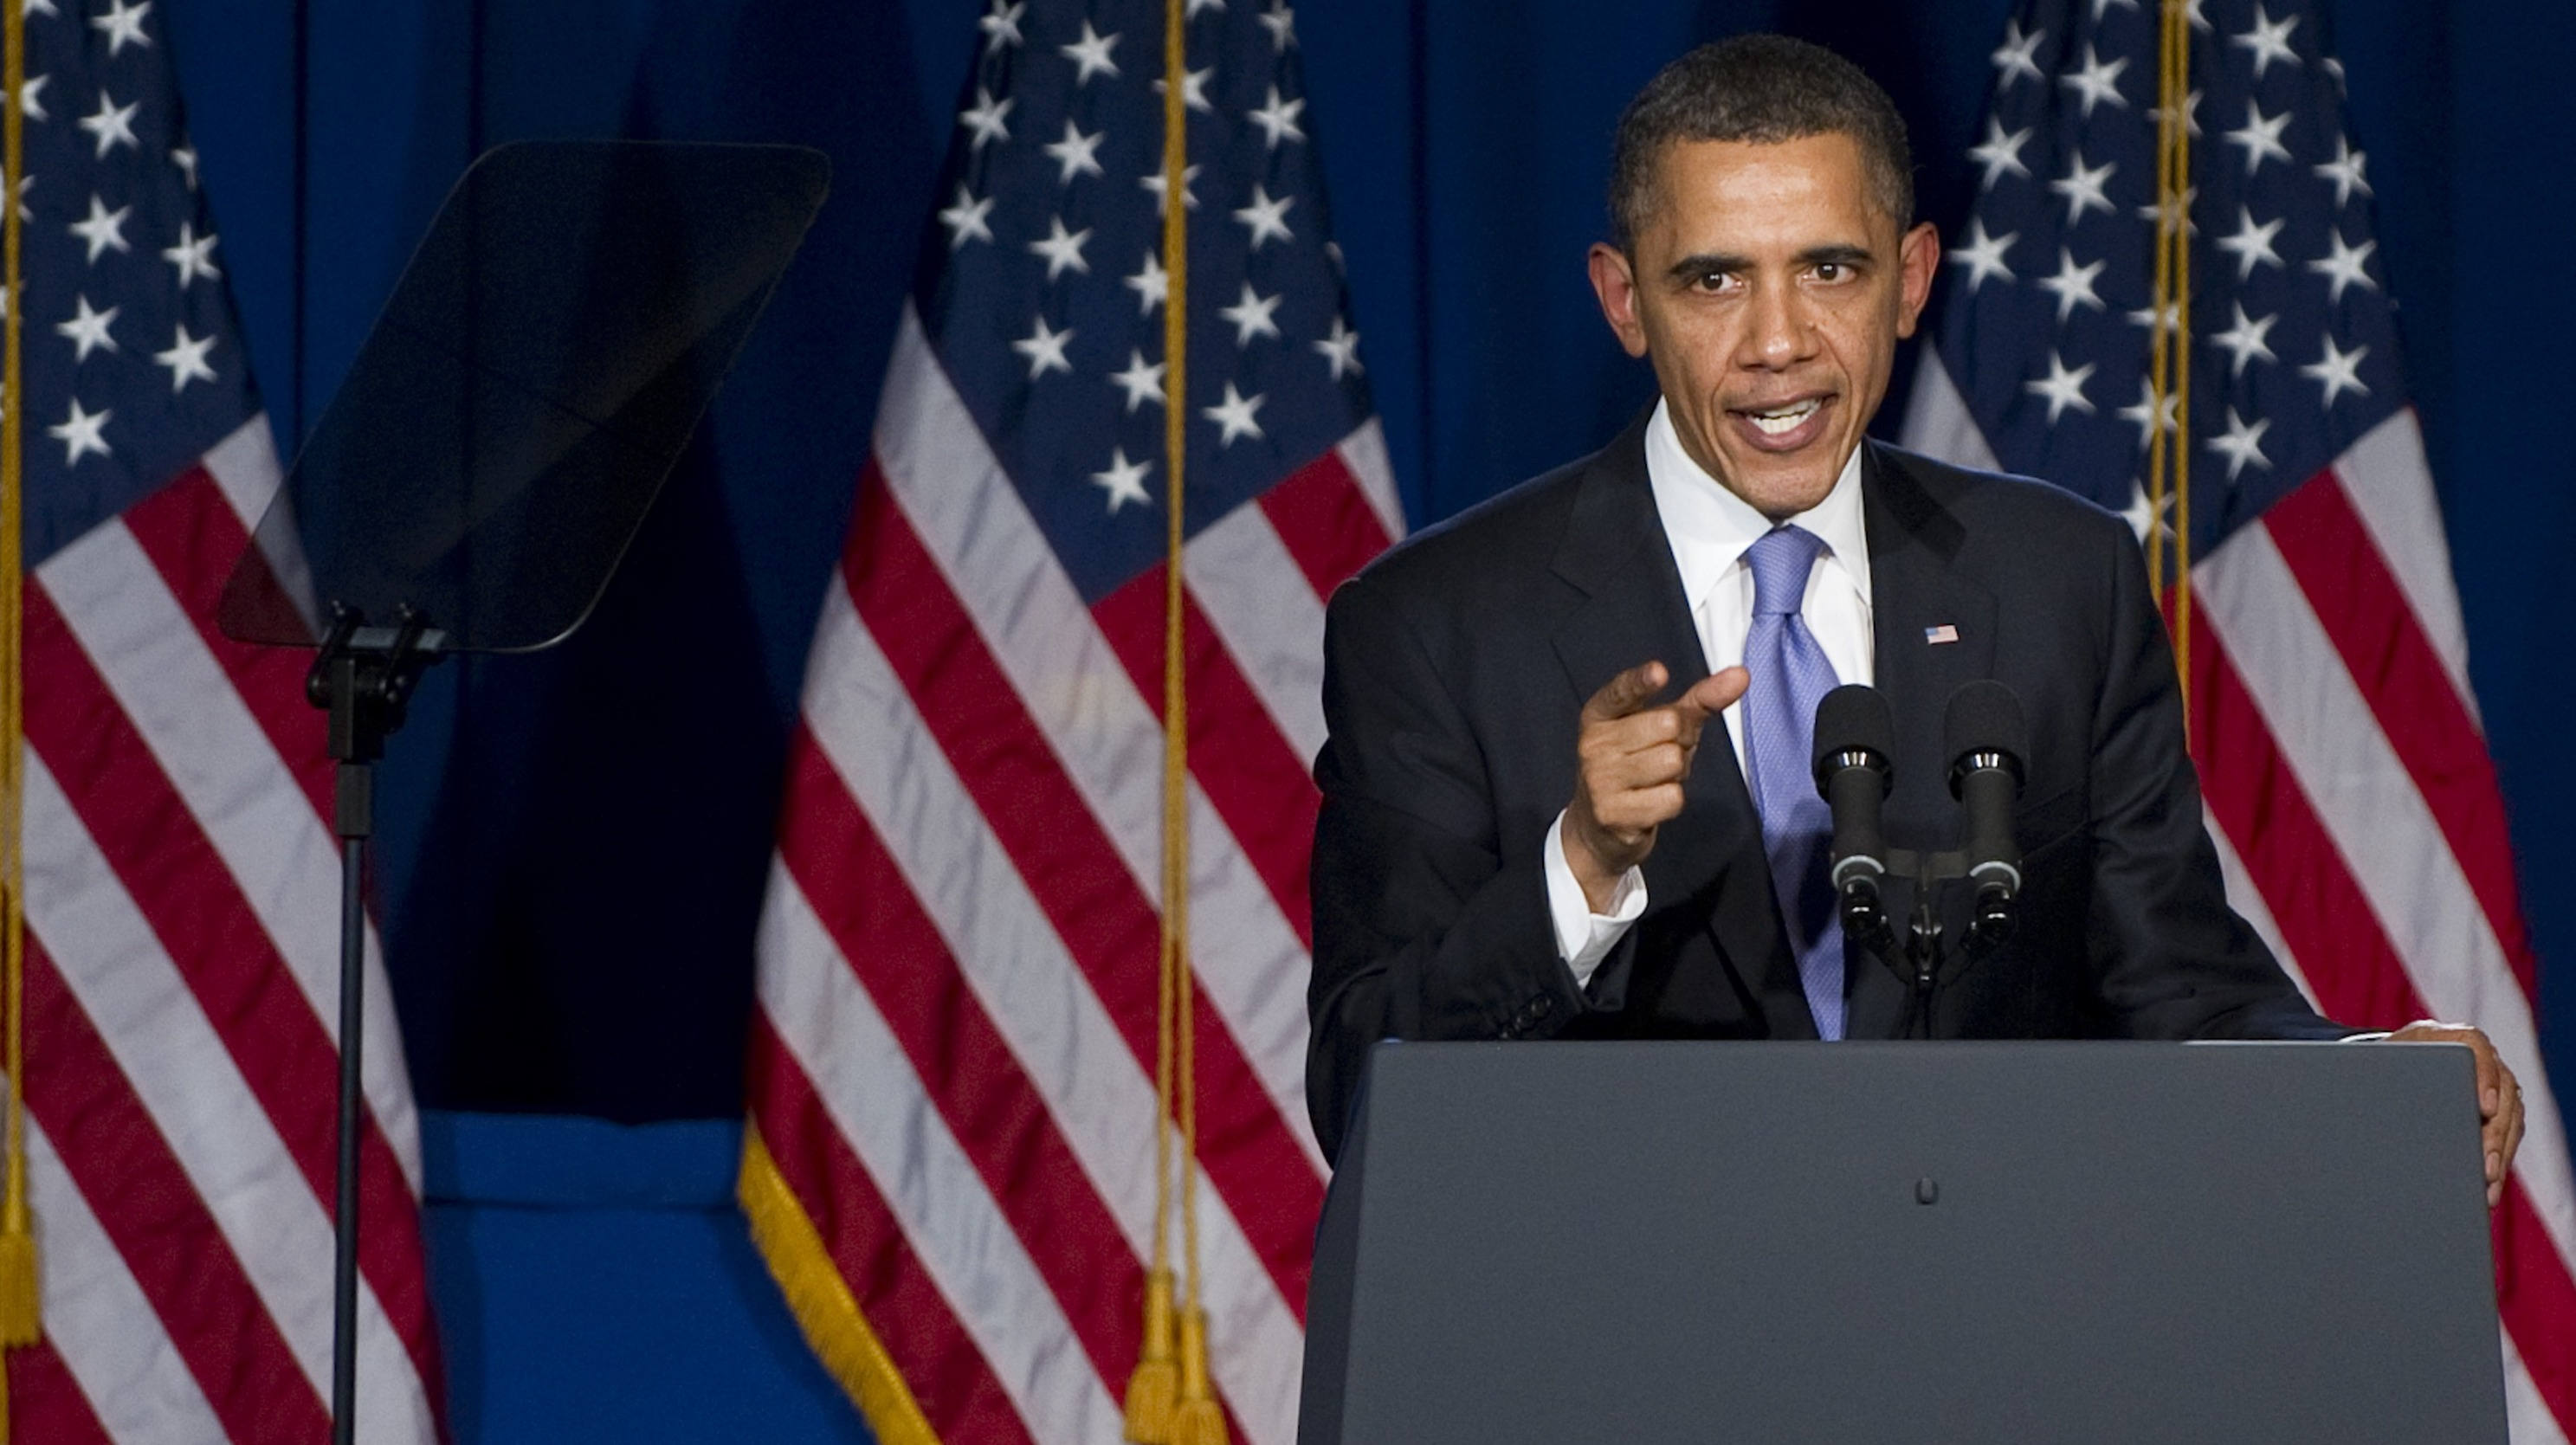 Obama says he's not bluffing on Iran nukes